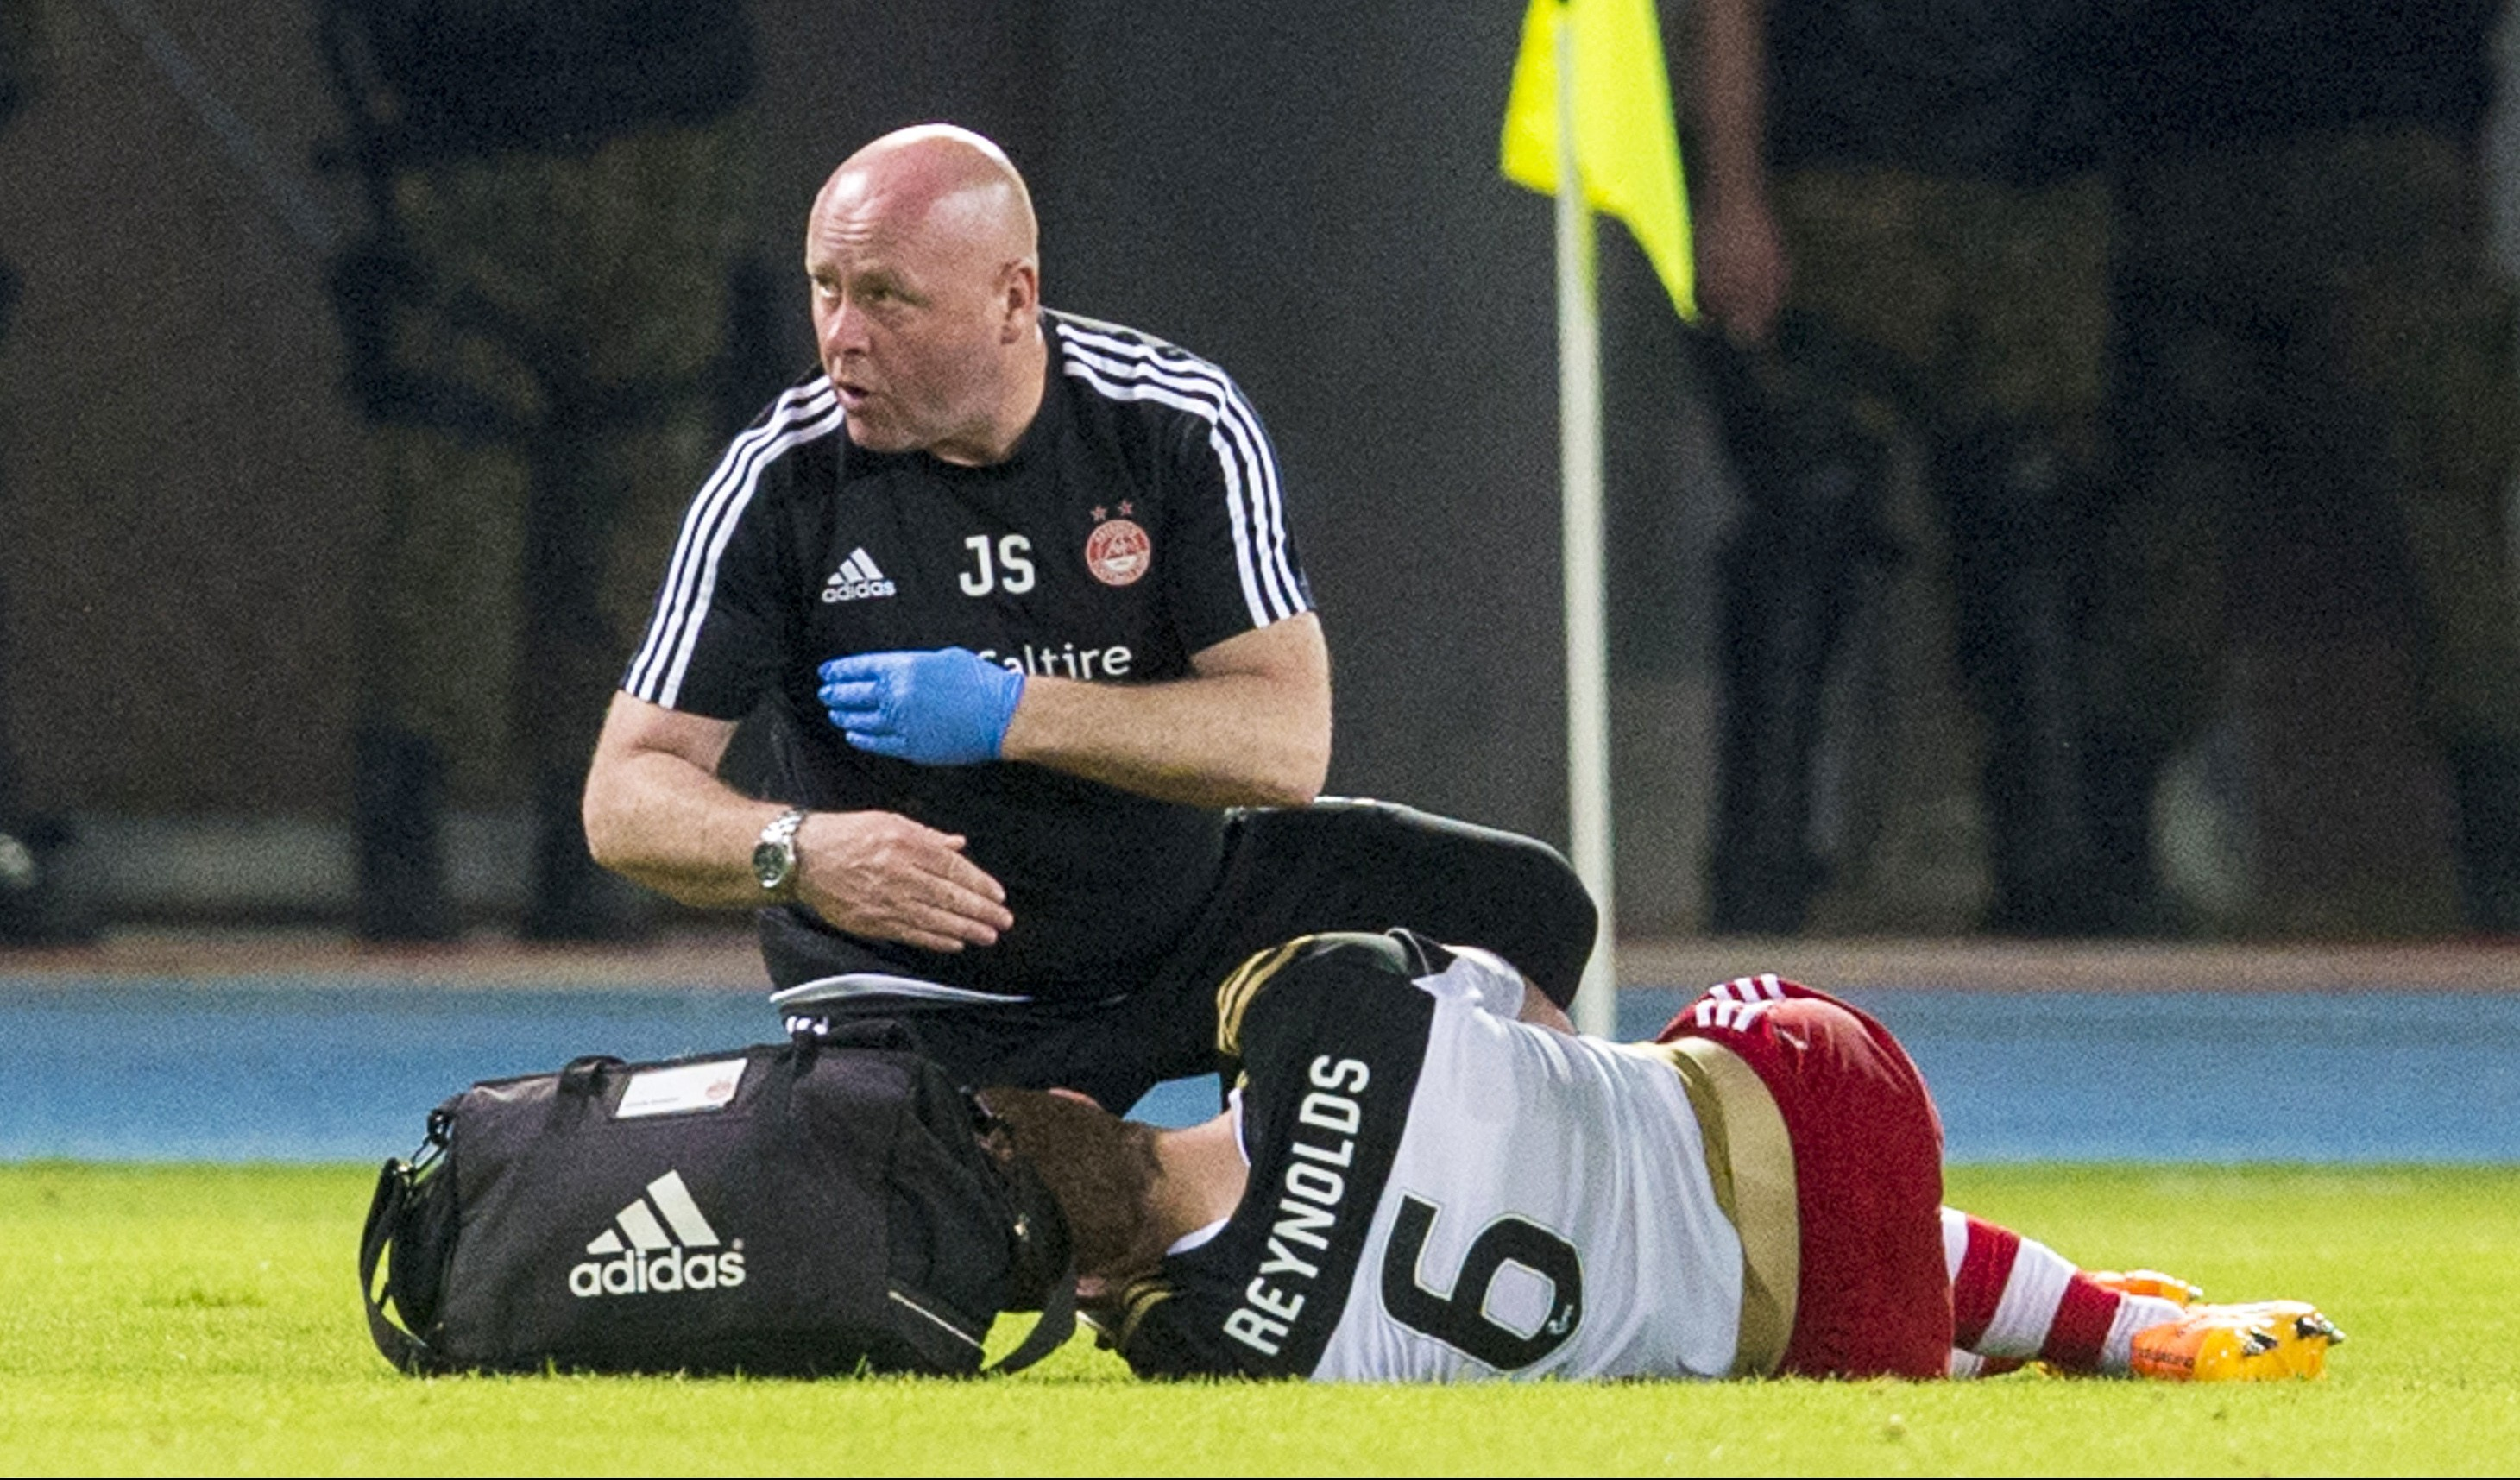 The team physio signals to the bench after Aberdeen's Mark Reynolds picks up an injury.